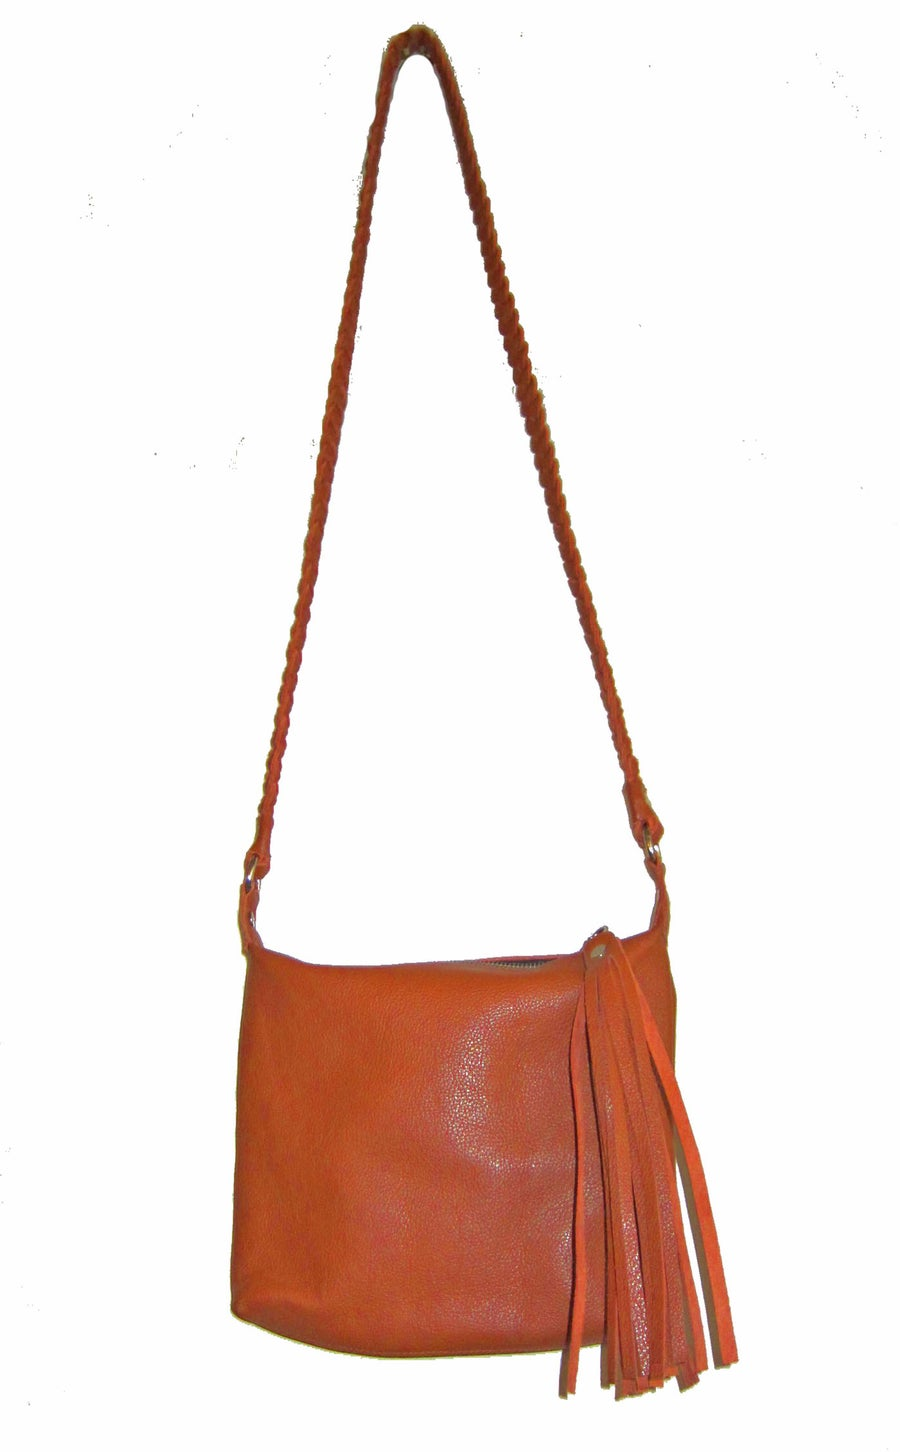 Image of Petty Cross-body bag